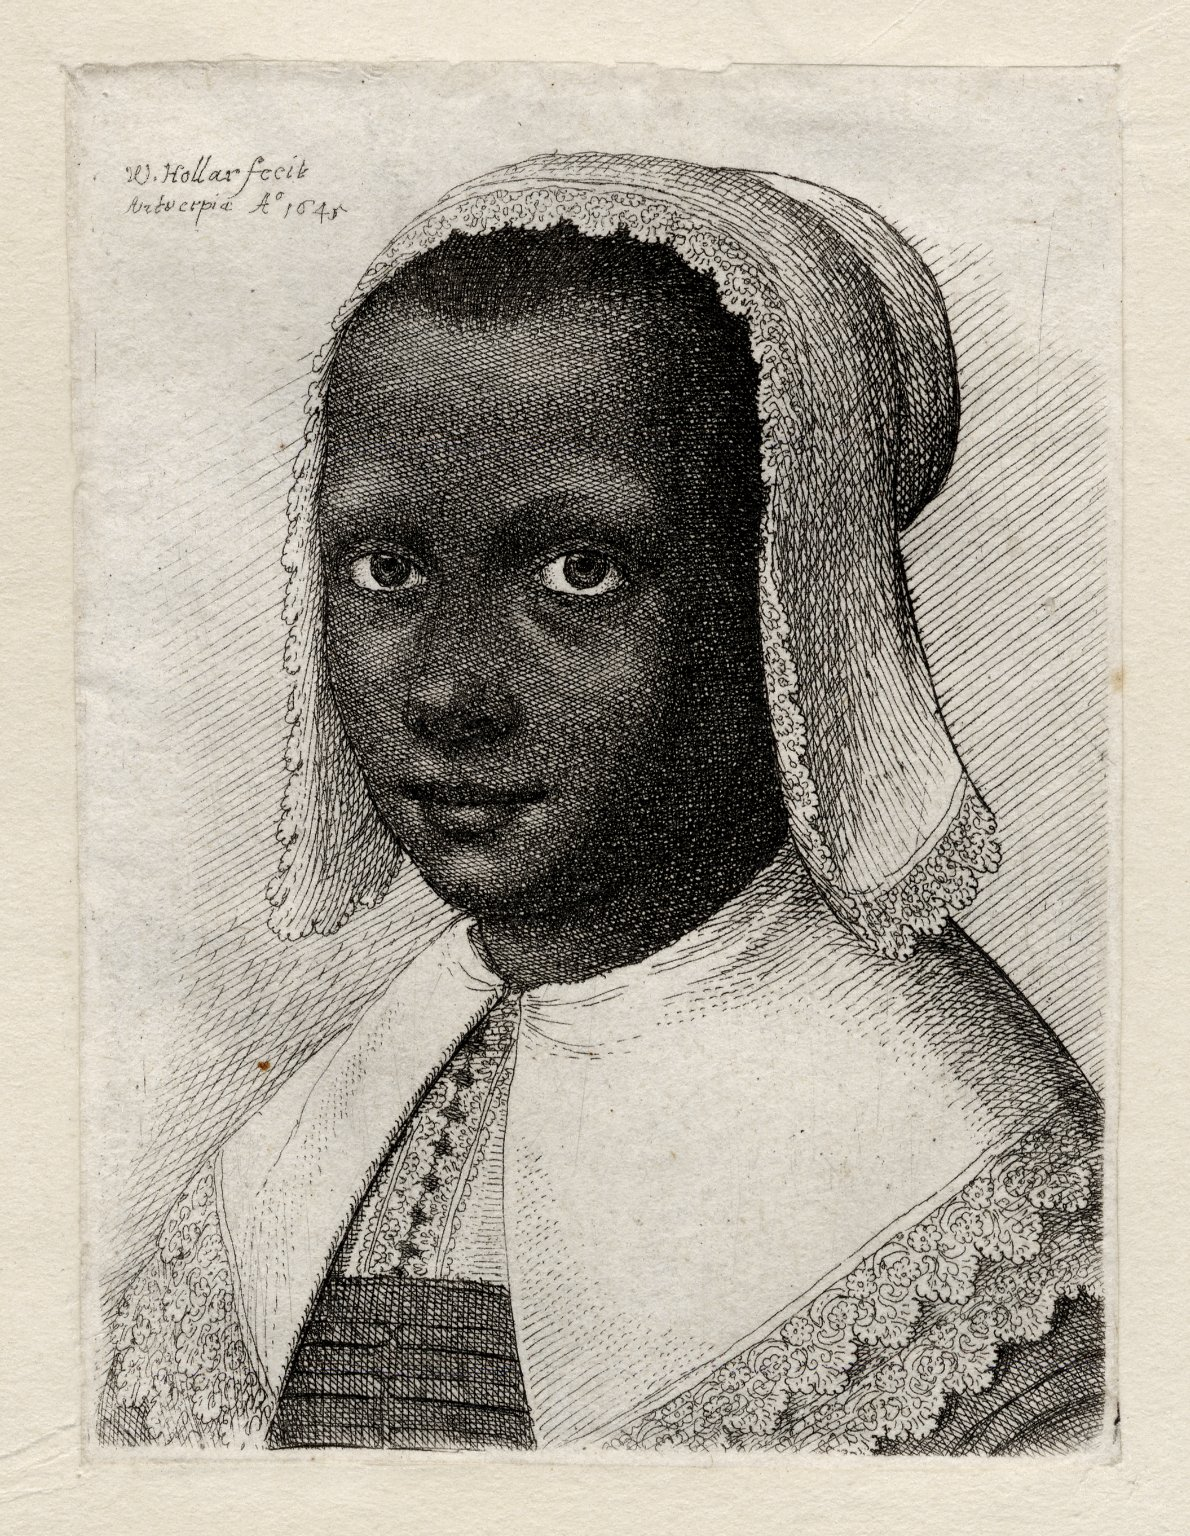 Head of a Black woman with a lace kerchief hat